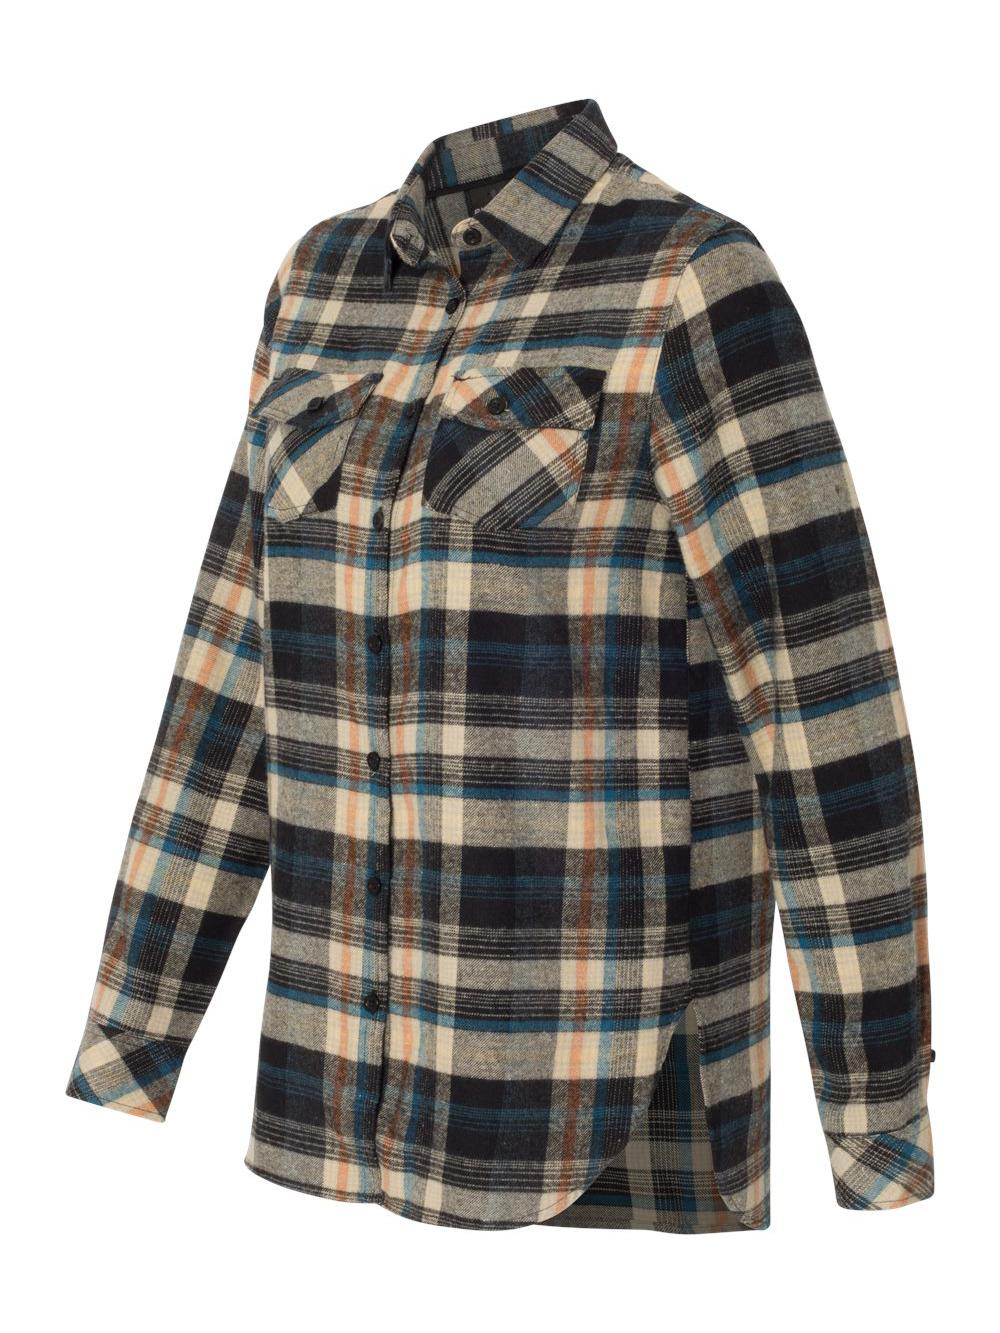 05167798 ... Long Sleeve Flannel Shirt. 5210 Dark Khaki XL. About this product.  Picture 1 of 4; Picture 2 of 4; Picture 3 of 4 ...